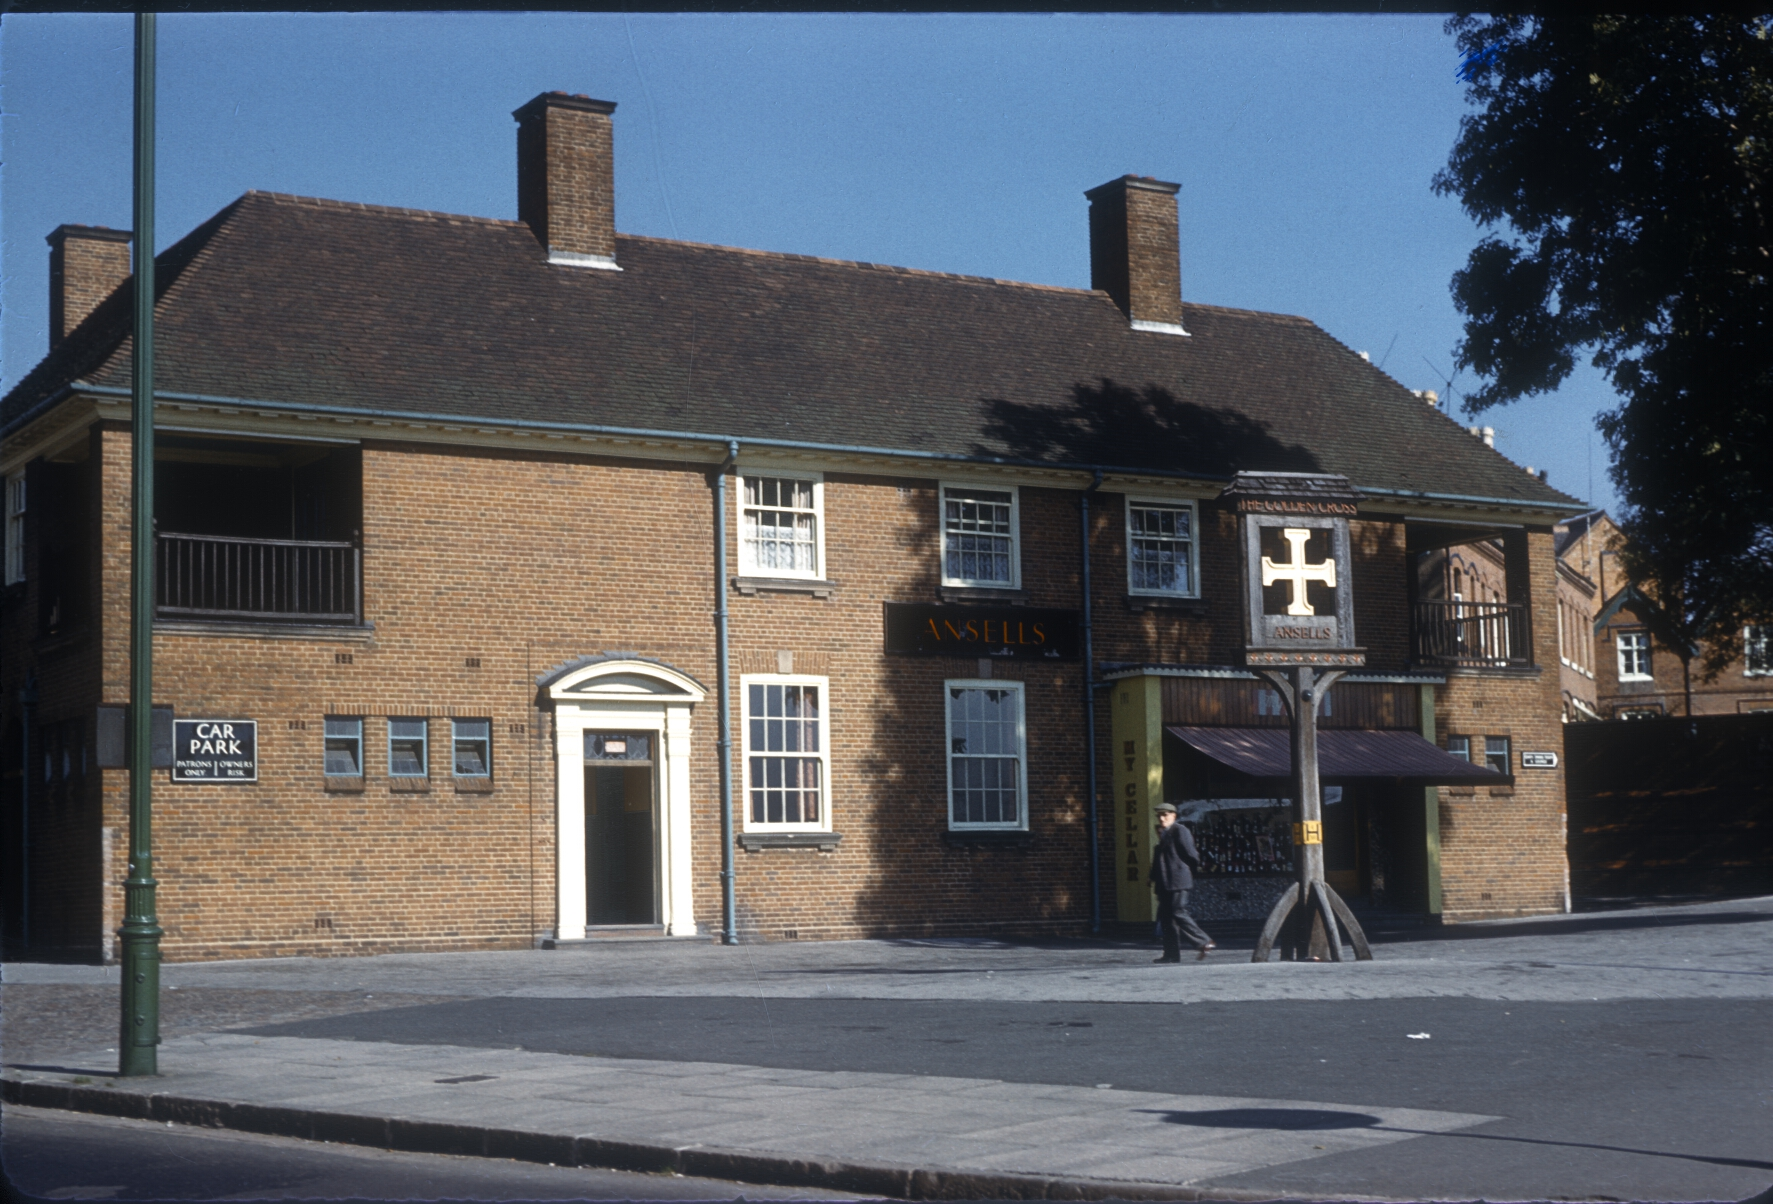 Harborne Golden Cross Public House, Corner of Metchley Lane. 25th September 1961